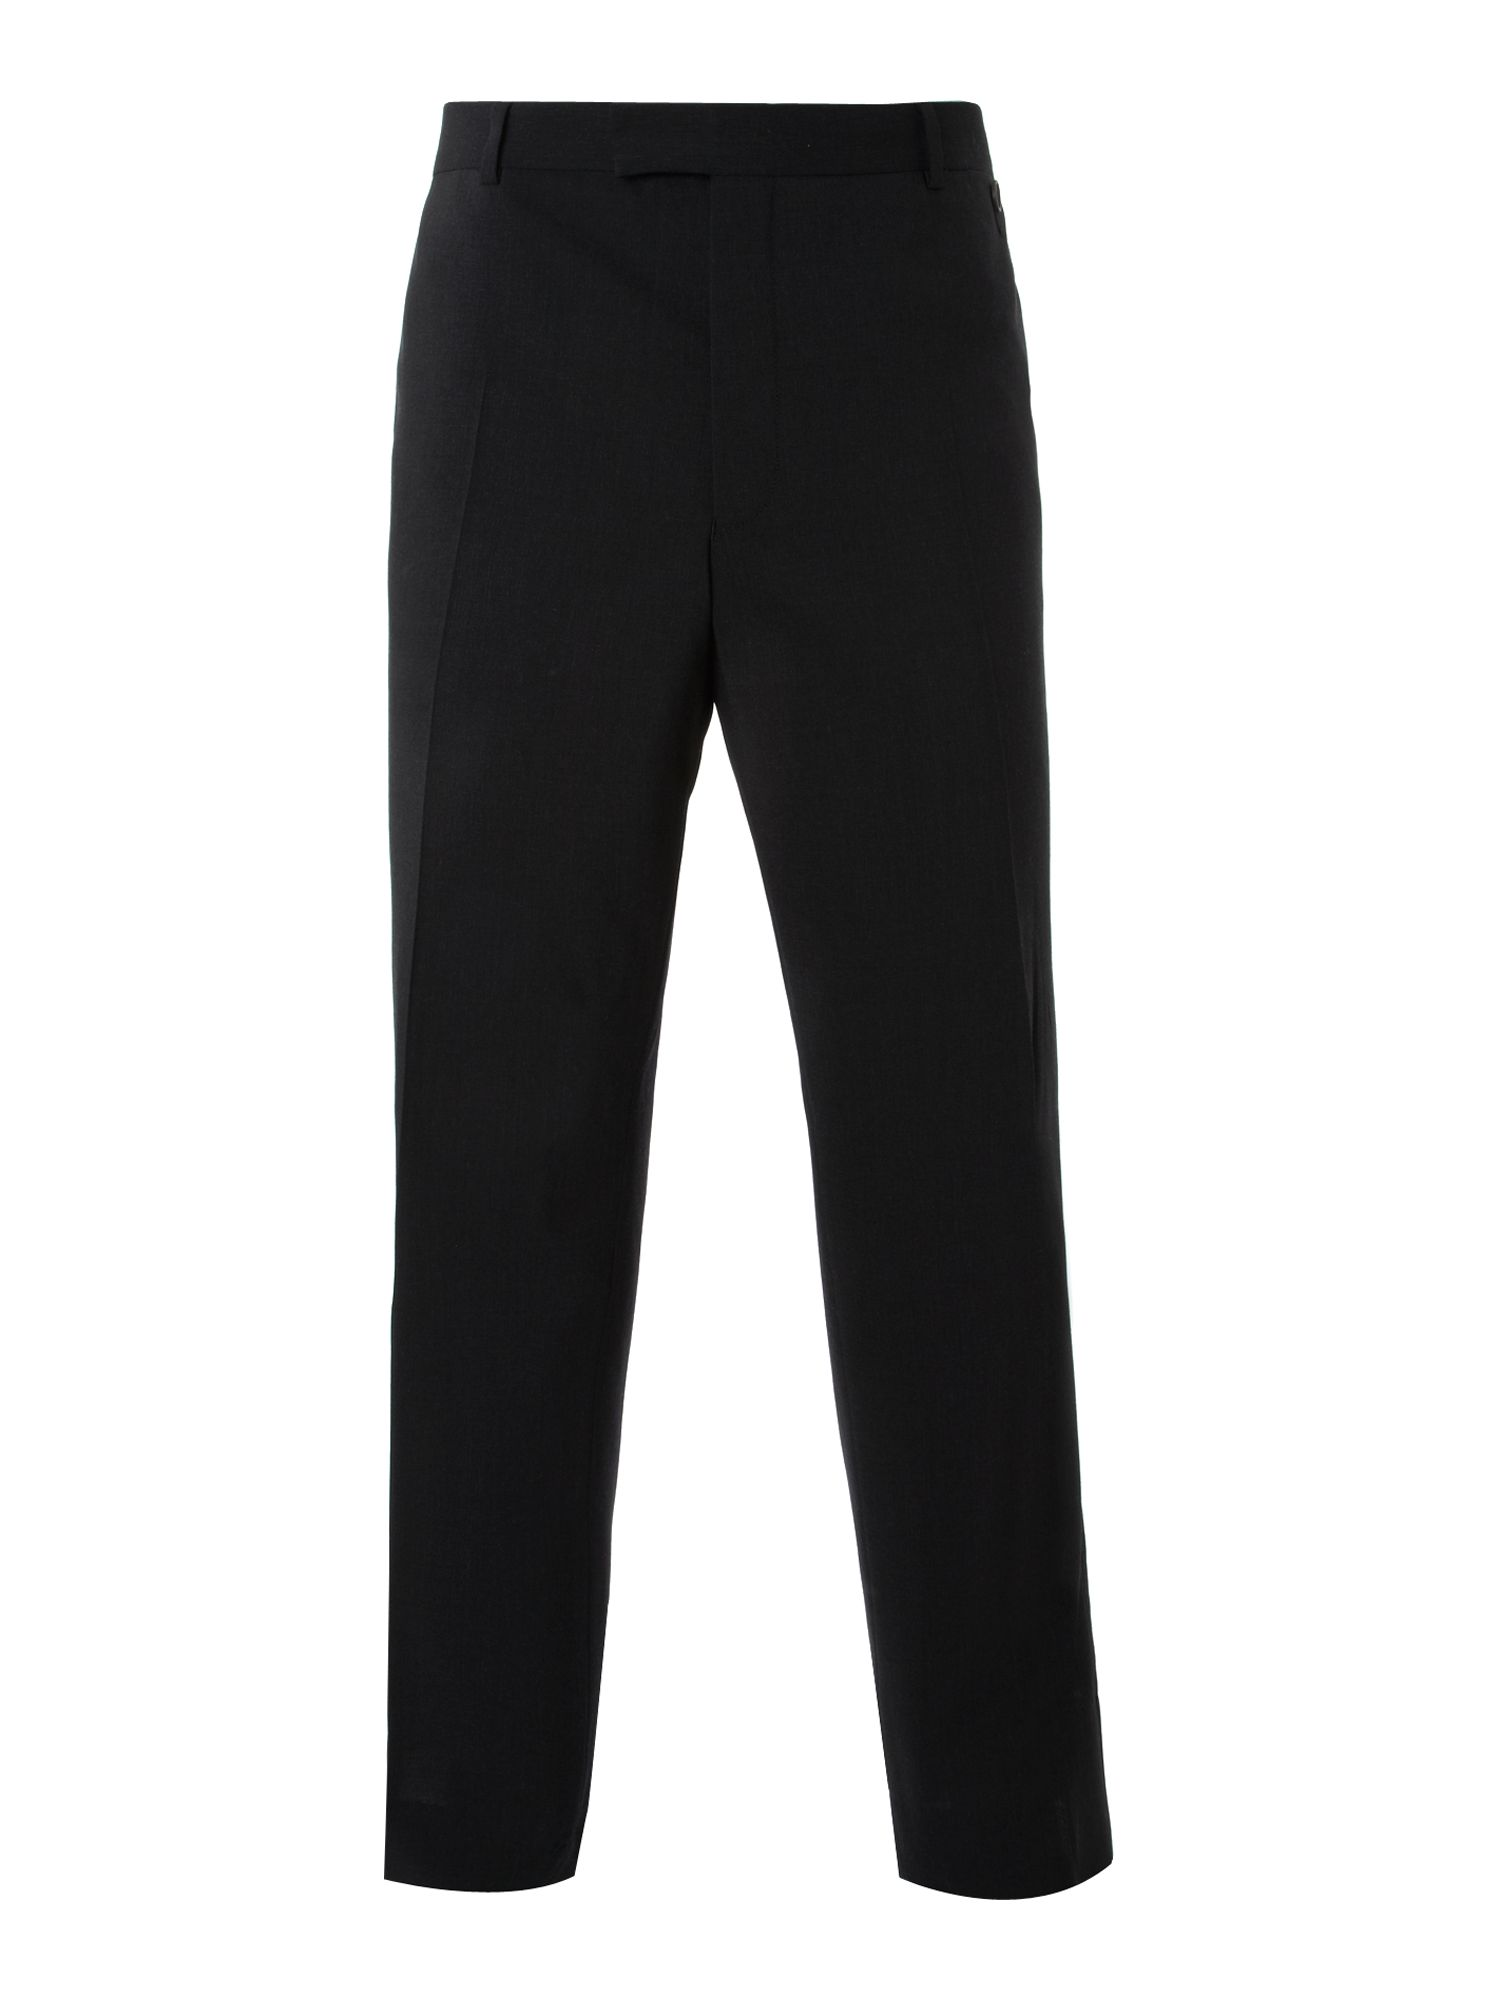 Dinner suit trousers